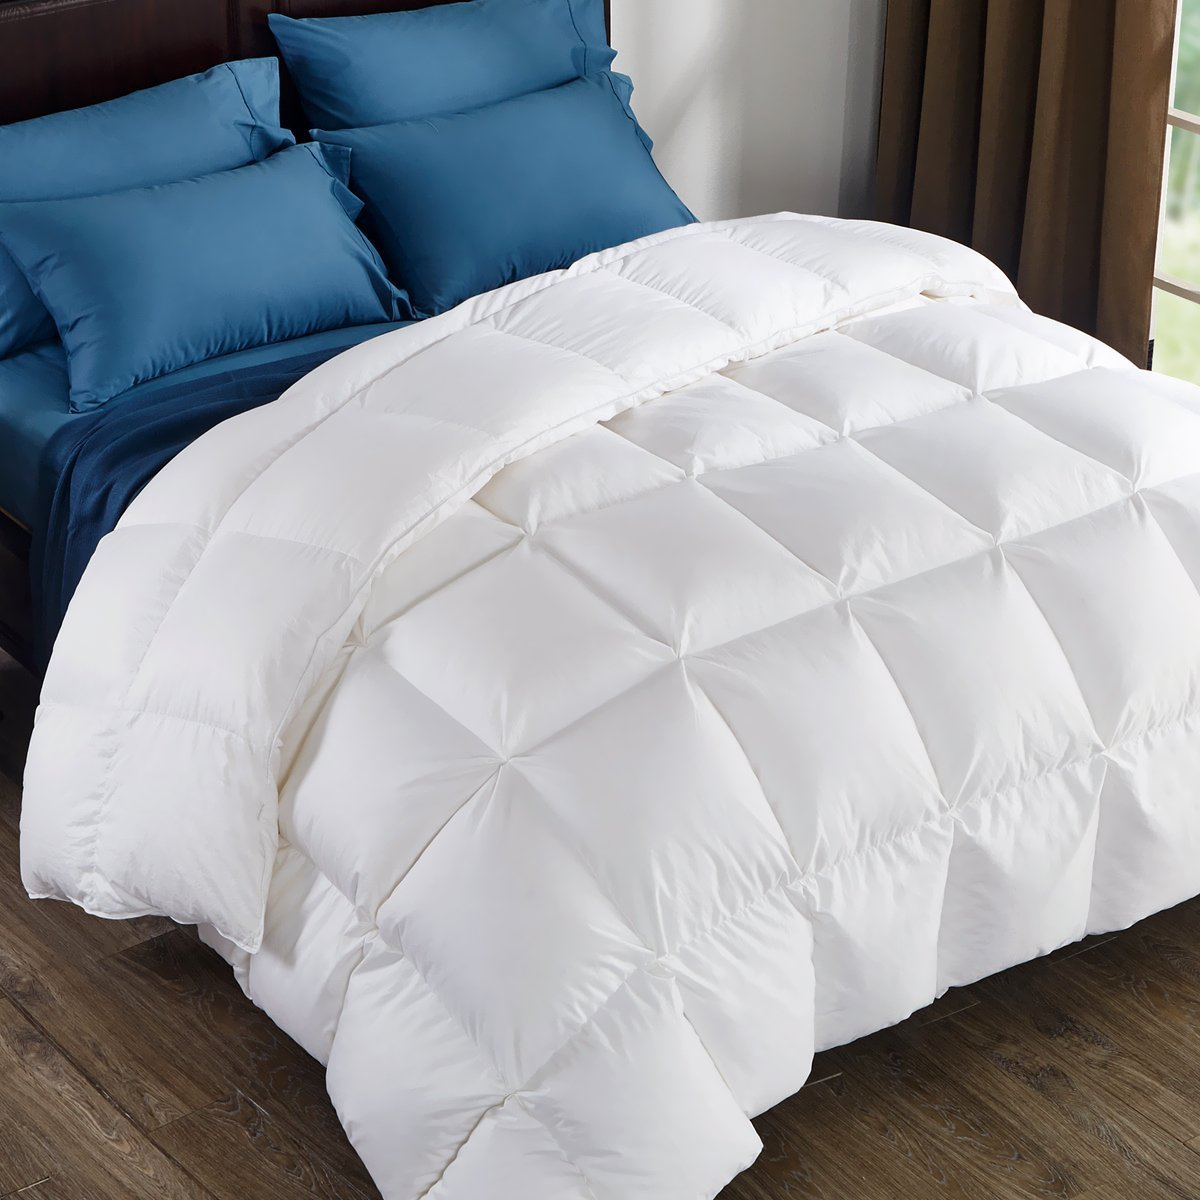 puredown 800 Fill Power White Goose Down Comforter, 700 Thread Count, 100% Cotton Fabric, Queen Size, White